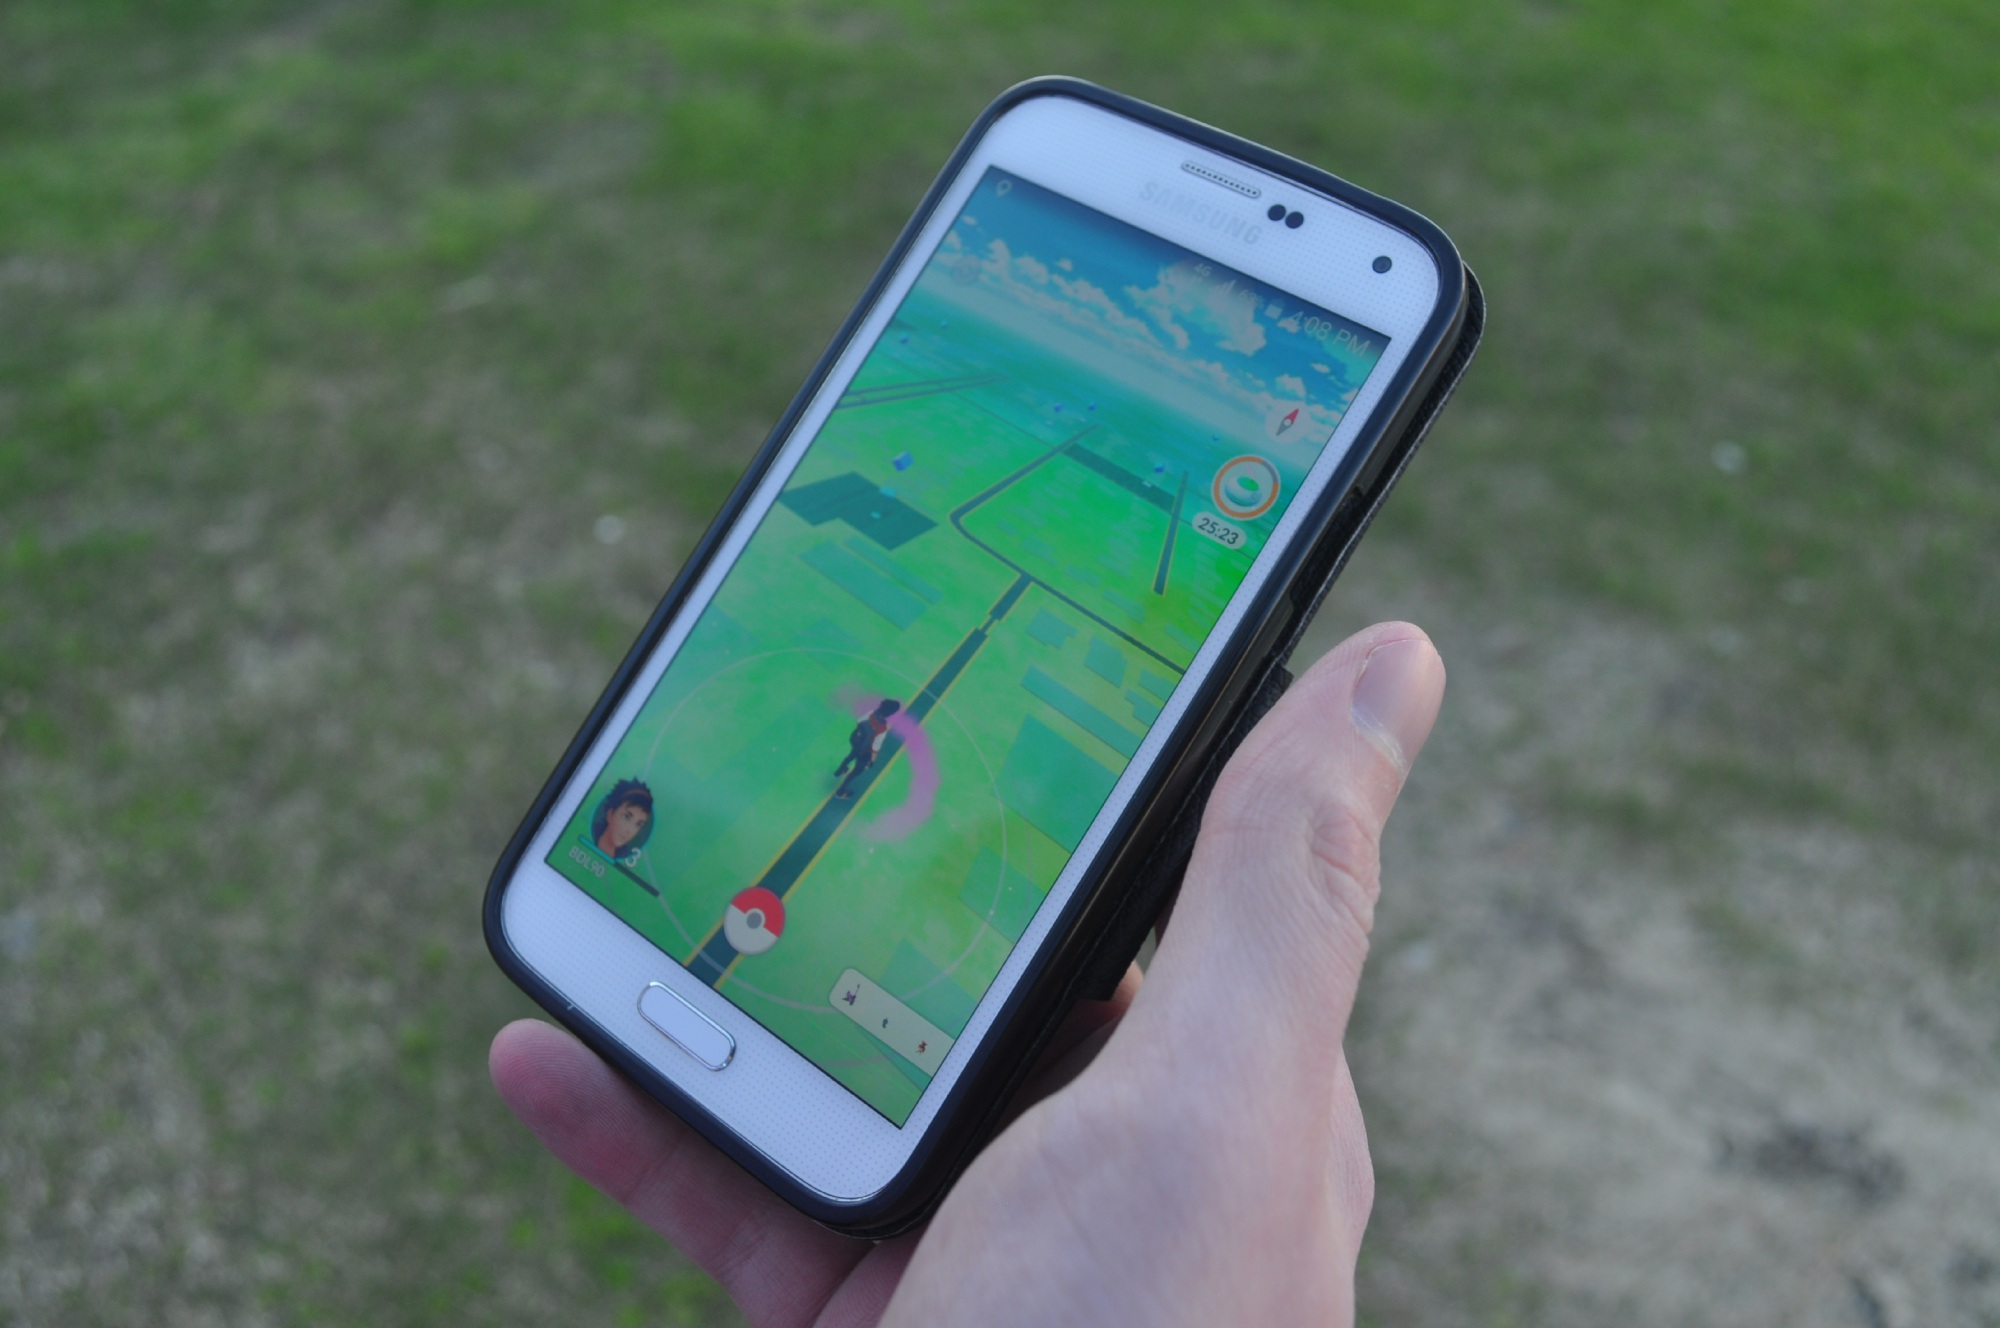 Armadale police almost hit Pokemon Go player, warn users to be vigilant